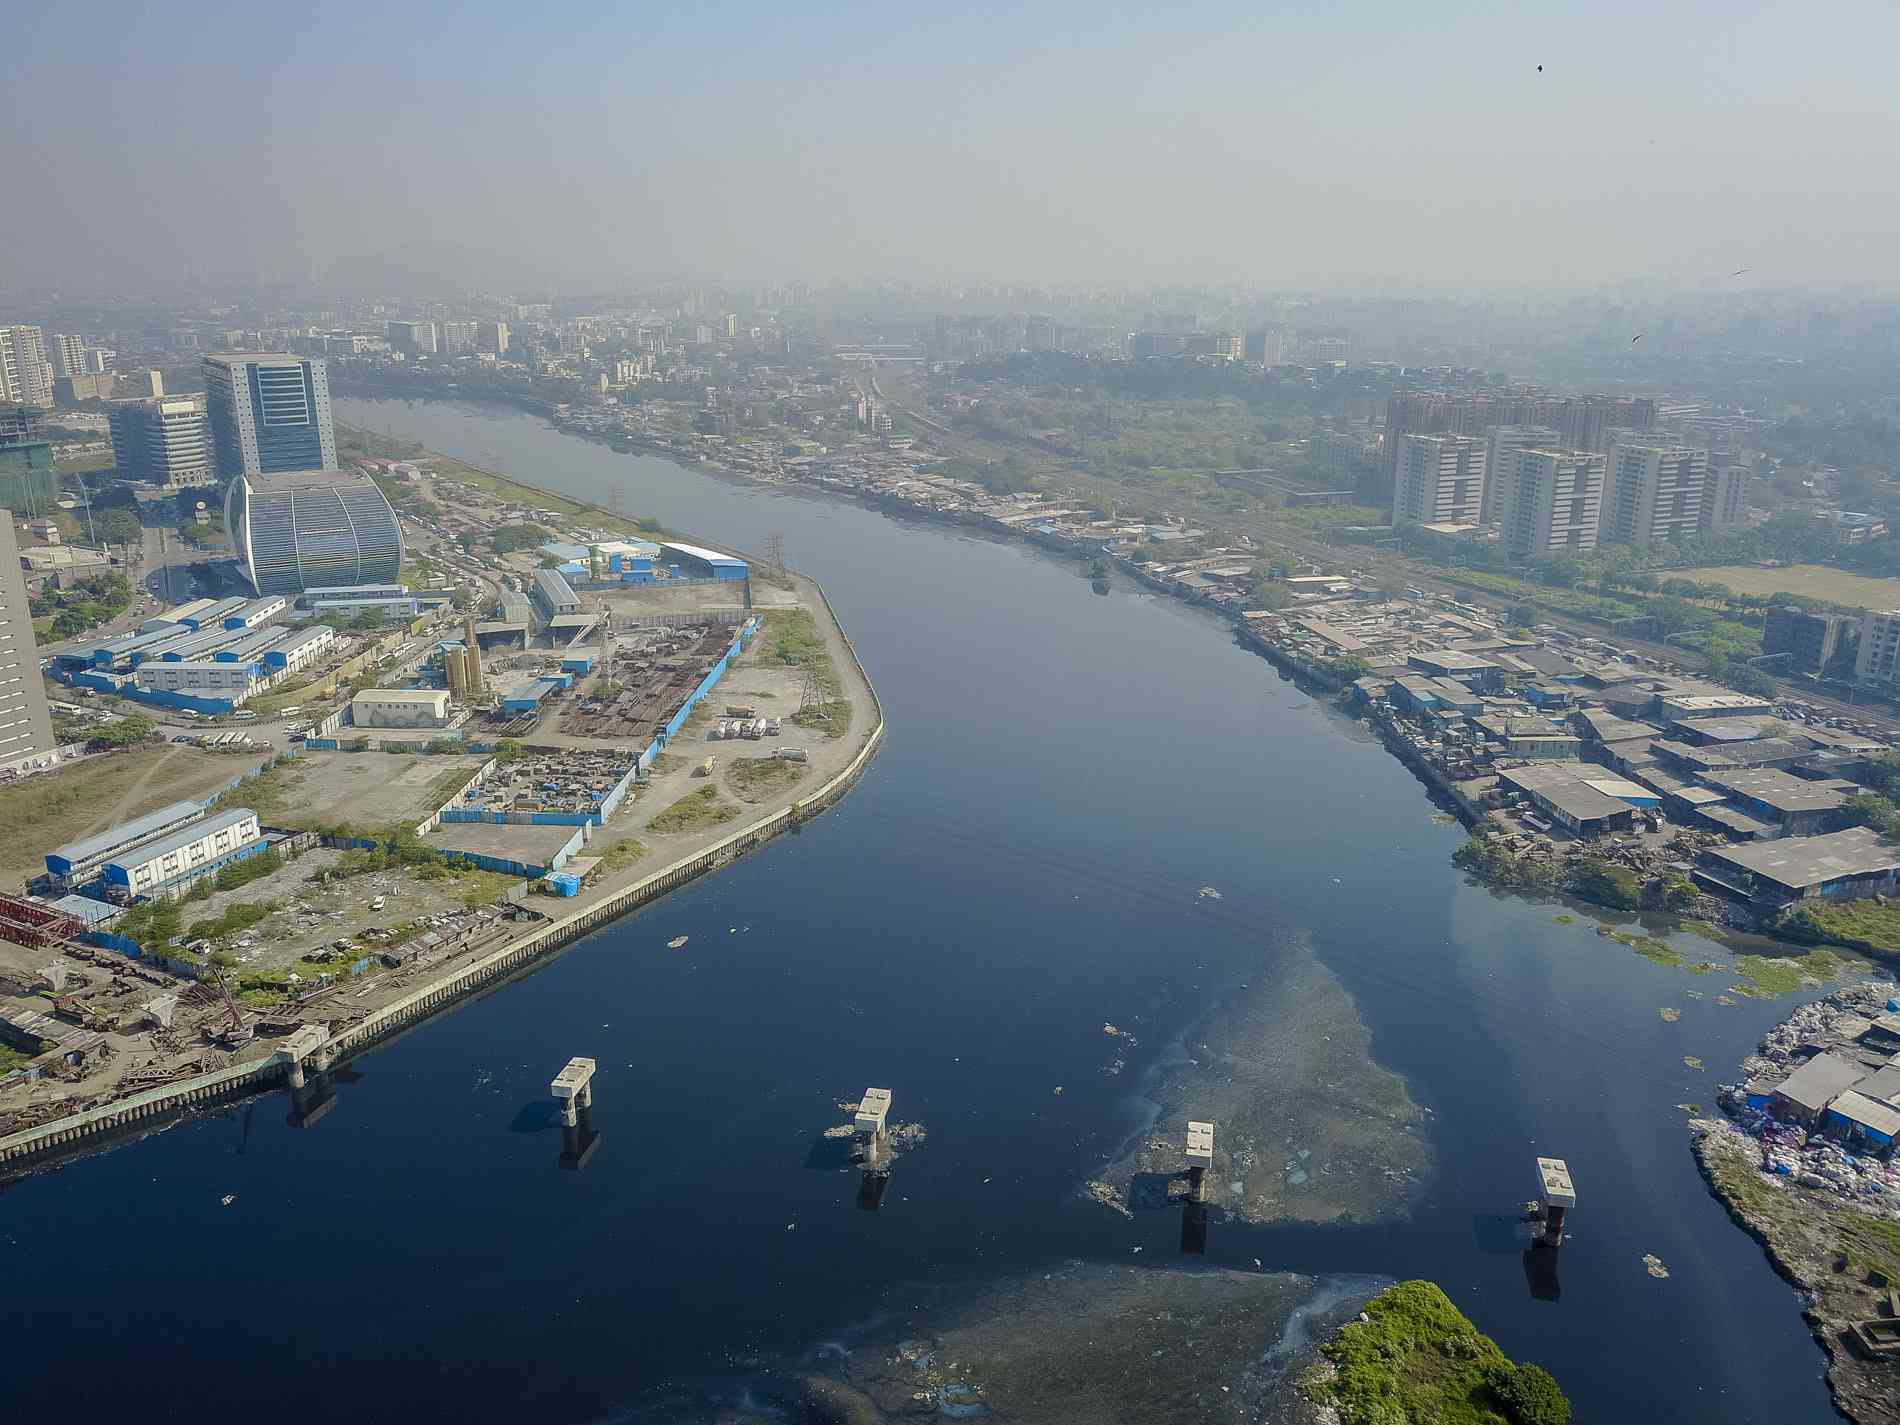 The Mithi River divides the buildings in Bandra Kurla Complex and the slum cluster to the right. Pillars have been laid for the BKC-Chunabhatti elevated road, which will connect the Eastern Express Highway to the busy office complex.